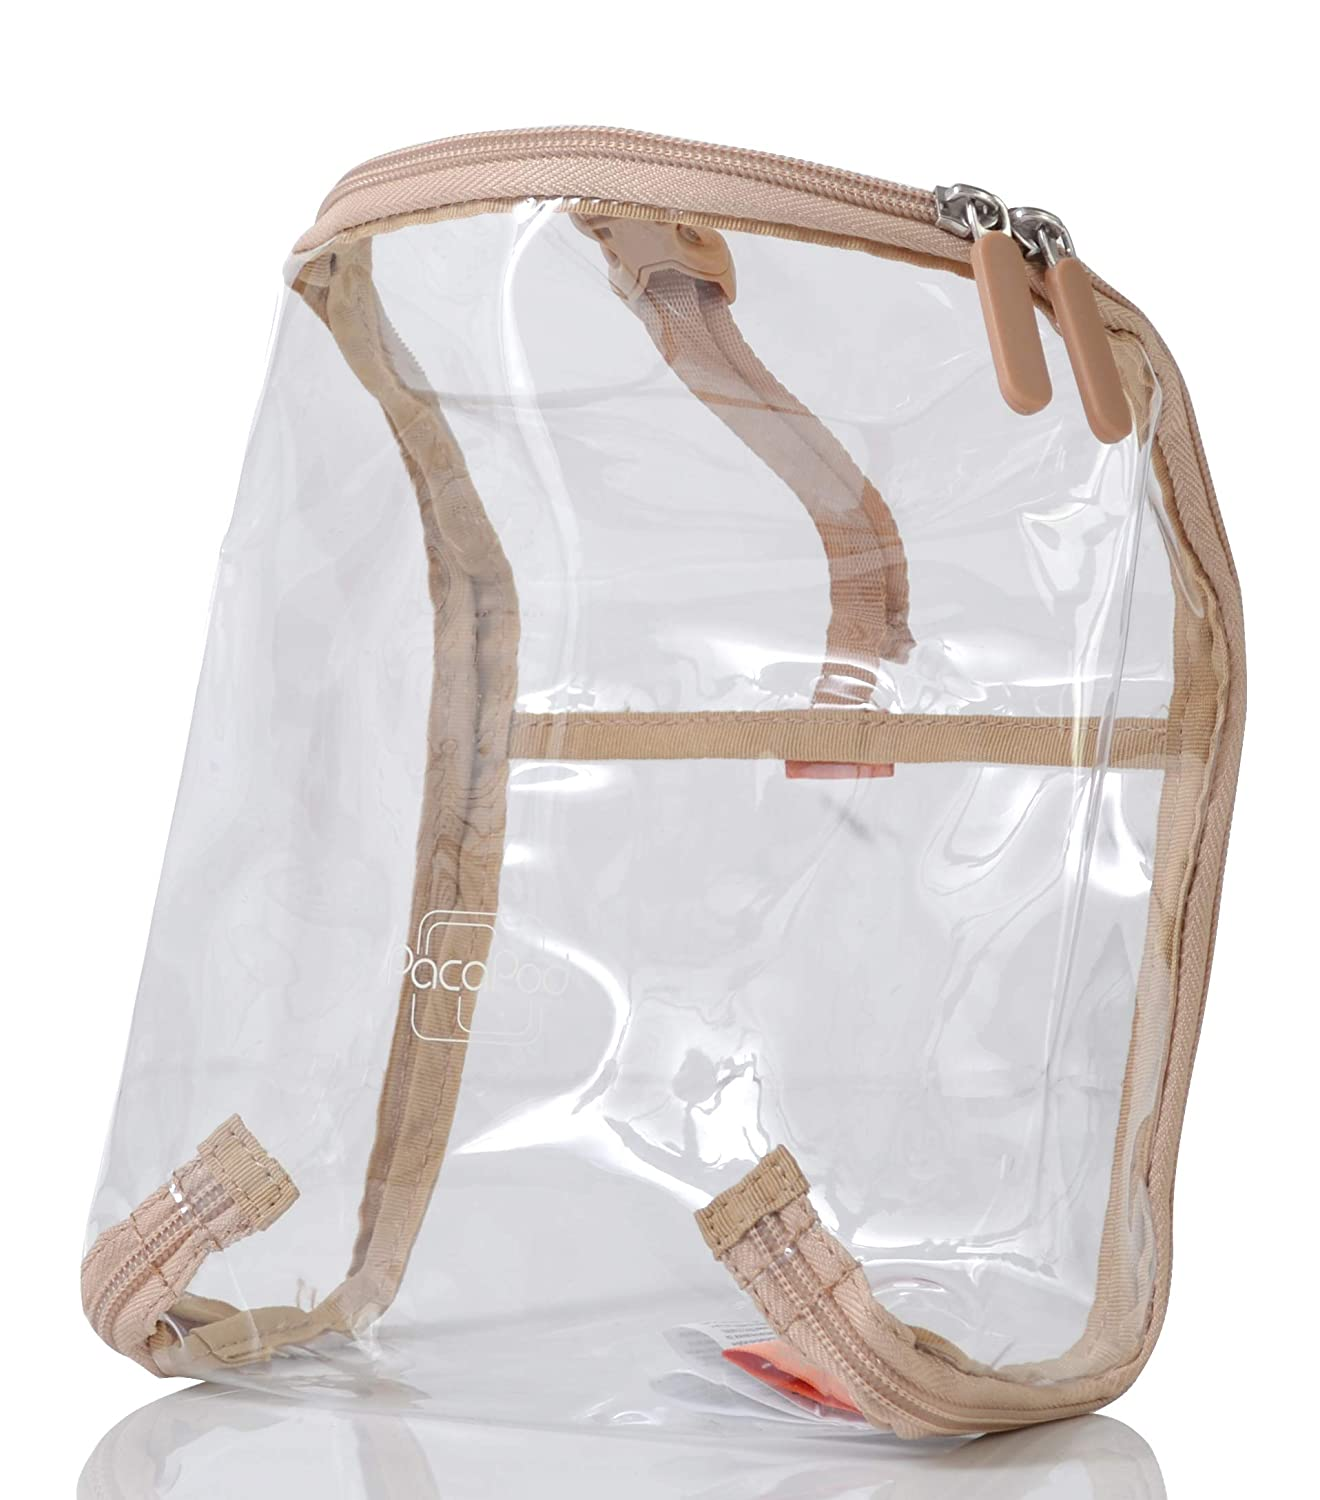 PacaPod Travel Pod - Clear Travel Accessory- Folds Flat for Easy Storage PacaPod Ltd PL:0113